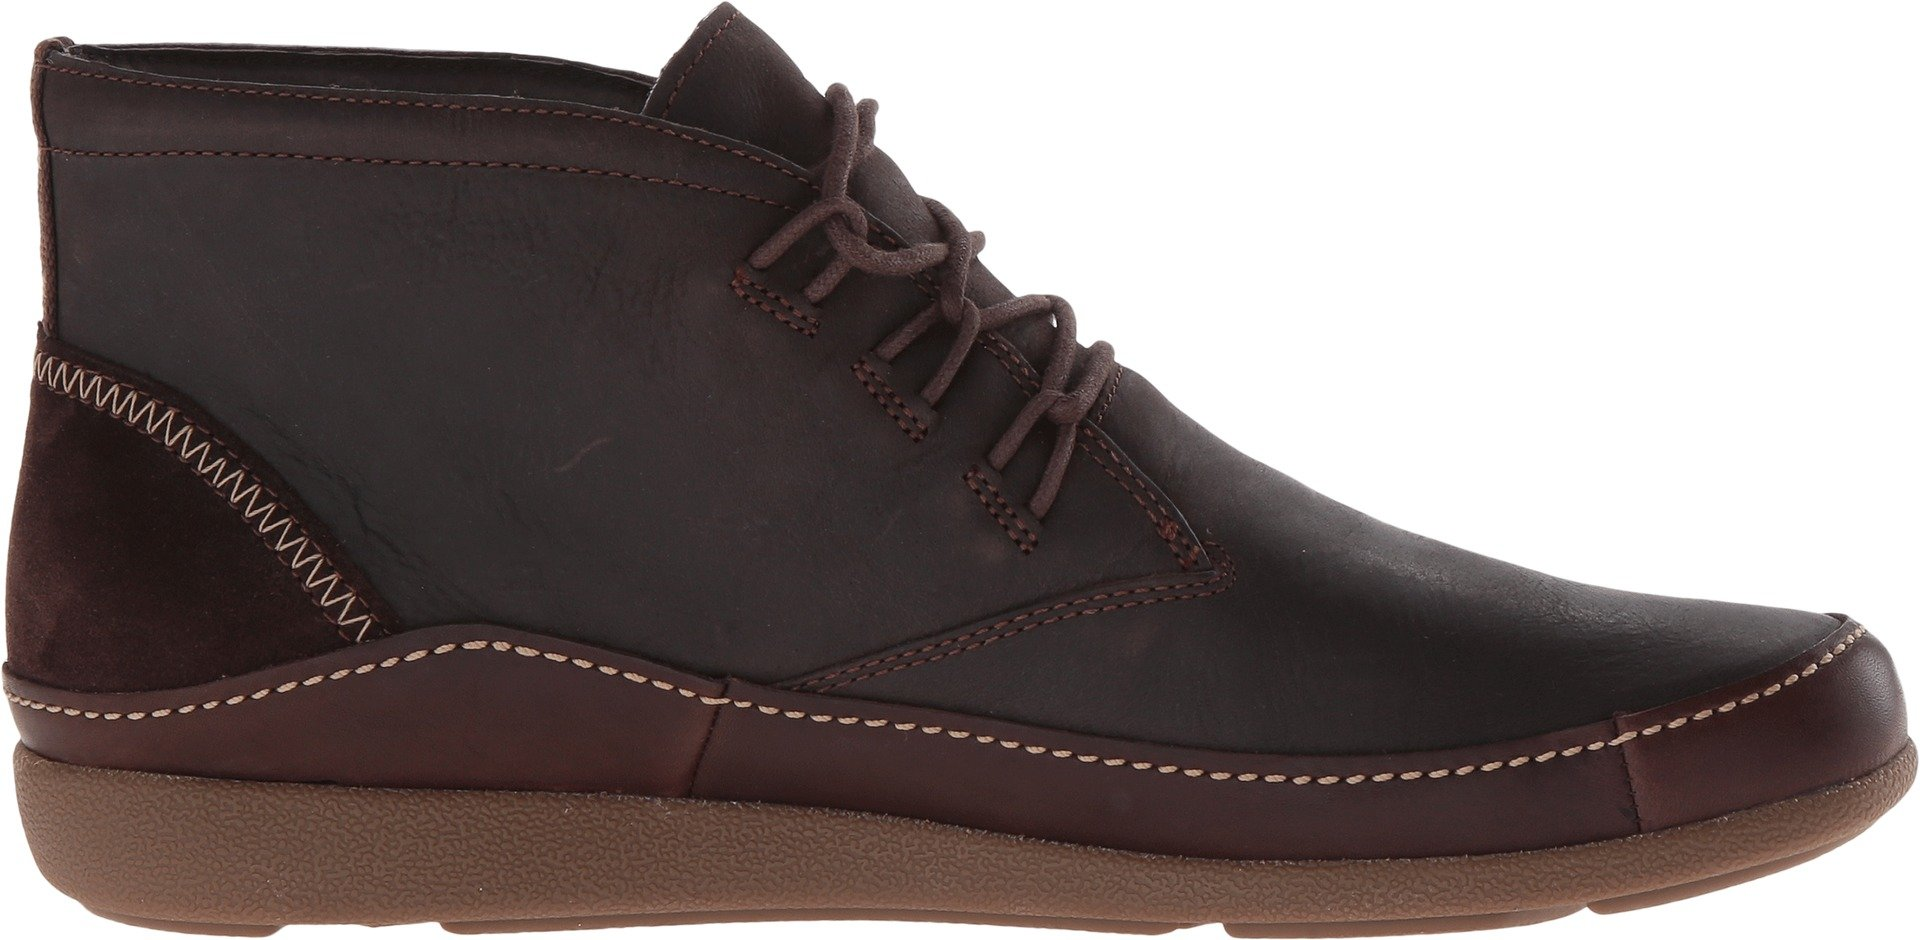 Chaco Men's Montrose Chukka-M Boot, Java, 9.5 M US by Chaco (Image #3)